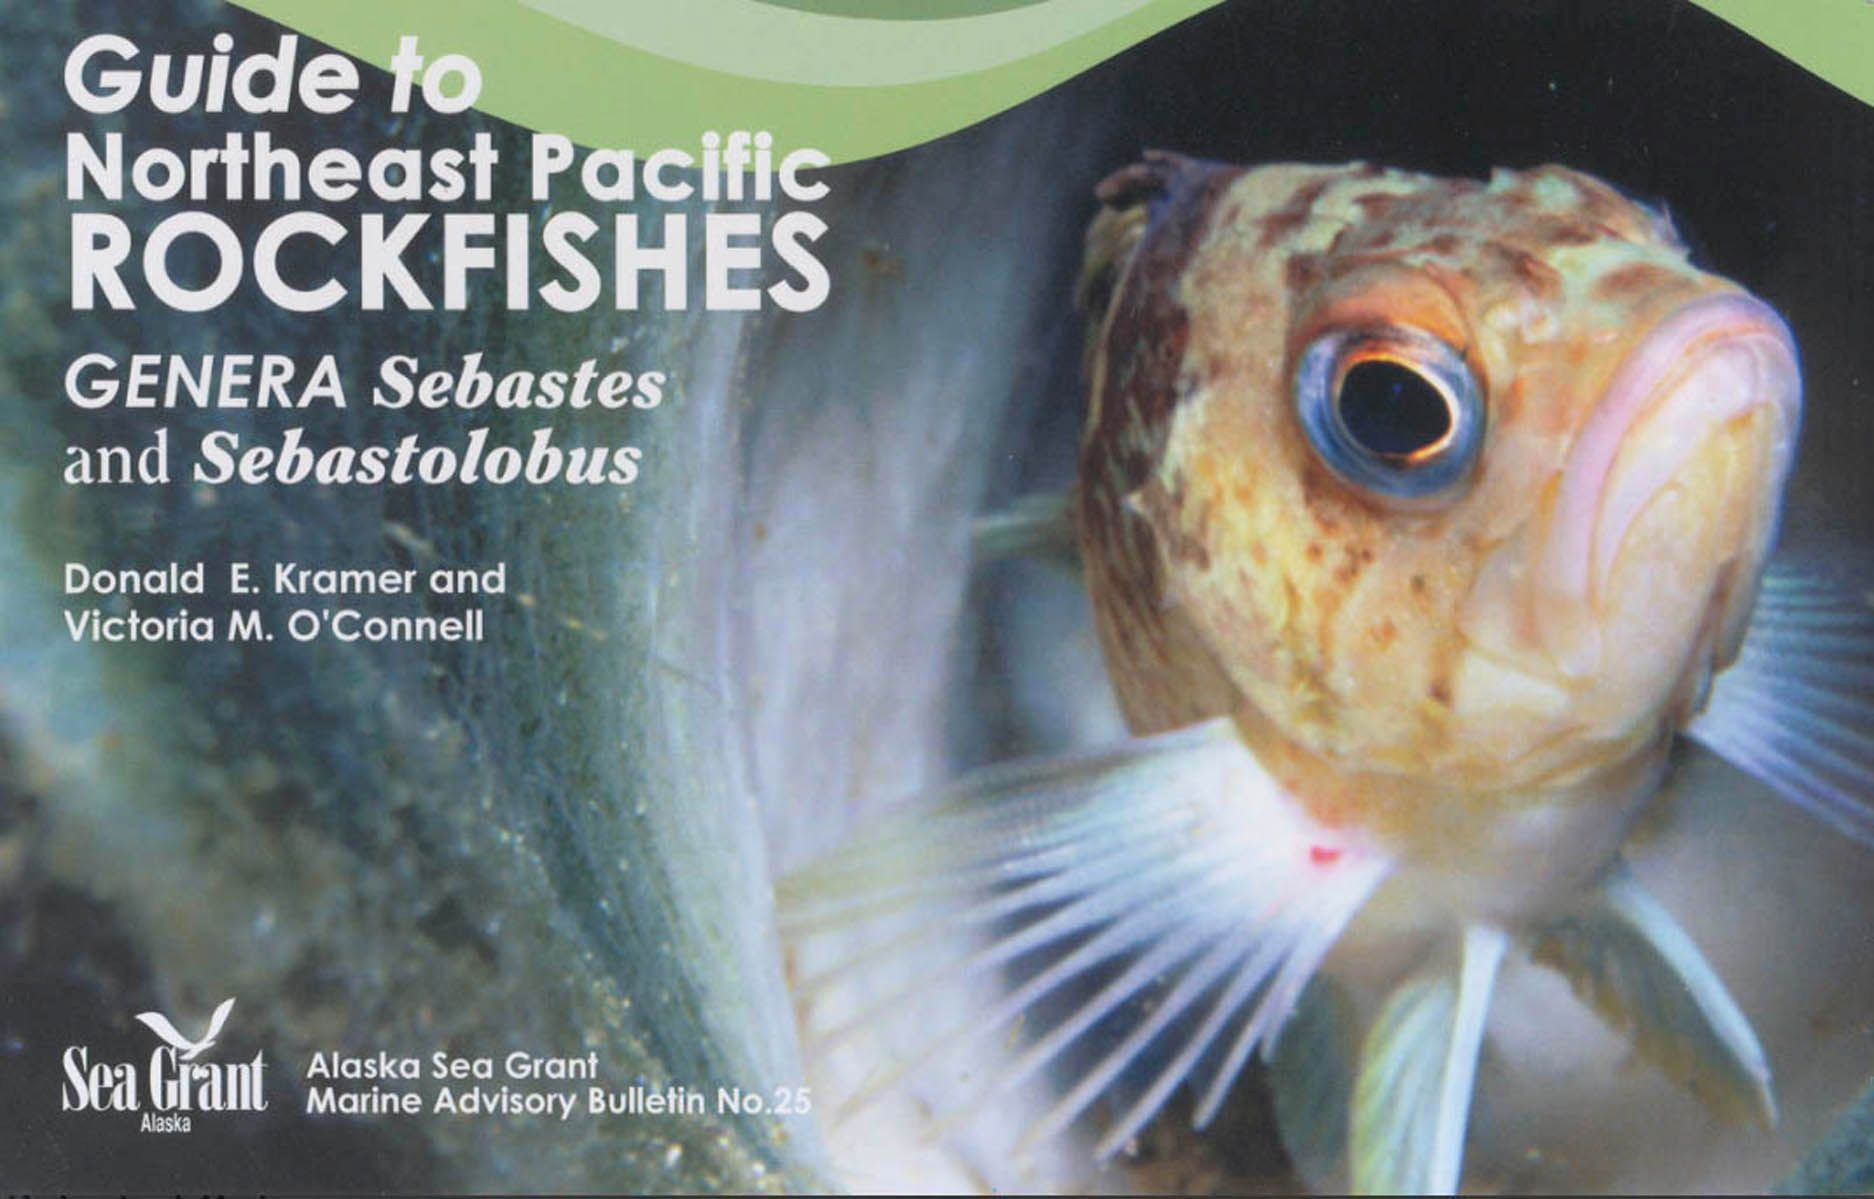 Guide to Northeast Pacific Rockfishes